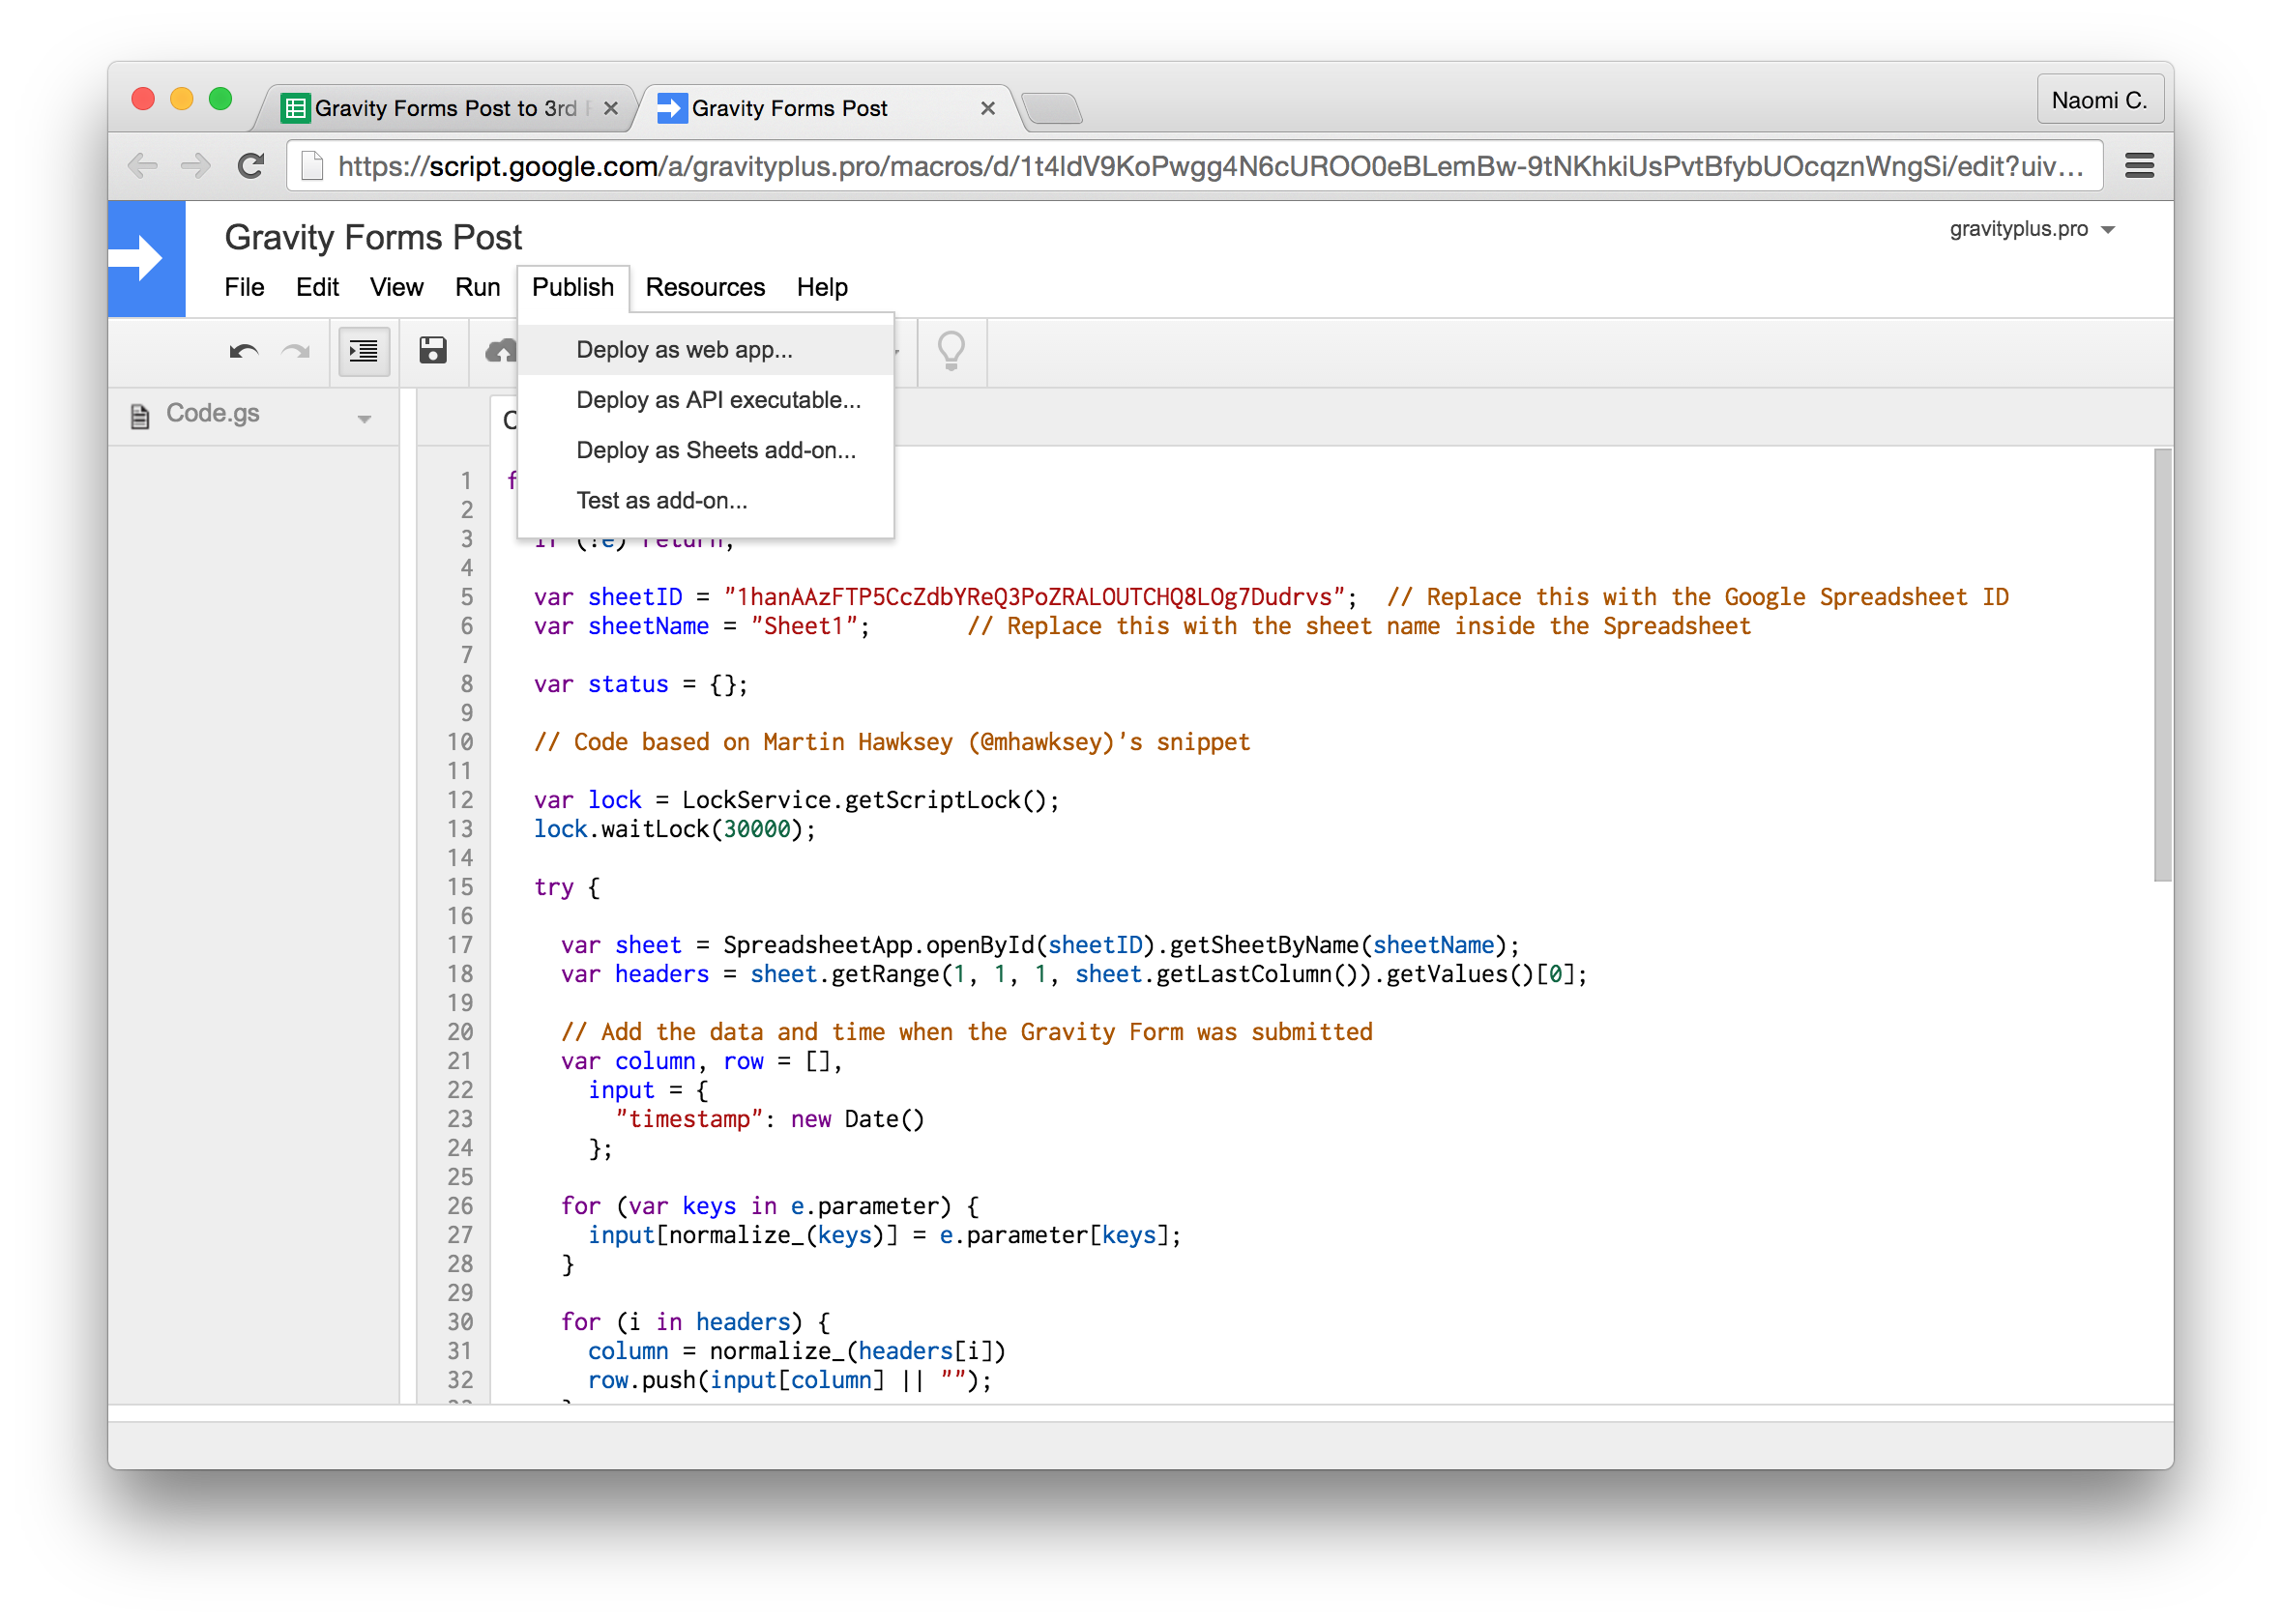 Gravity Forms to Google Sheets deploy as web app